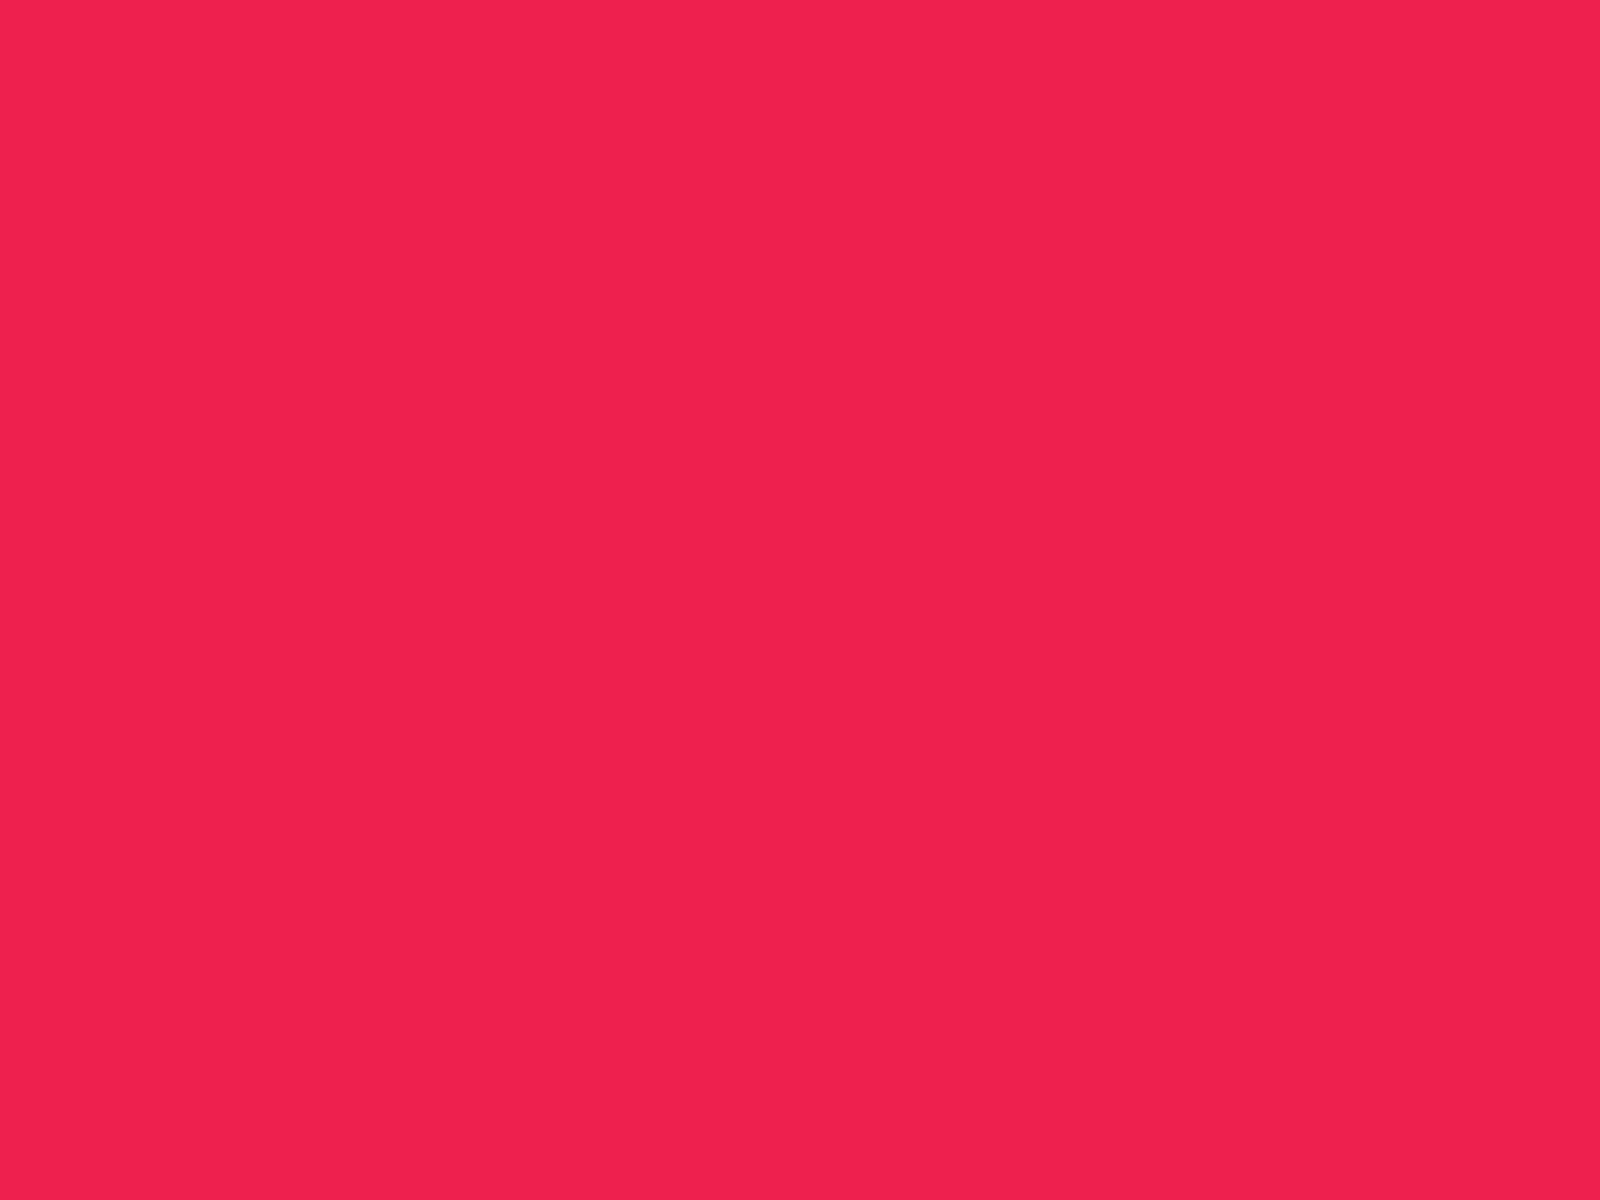 1600x1200 Red Crayola Solid Color Background